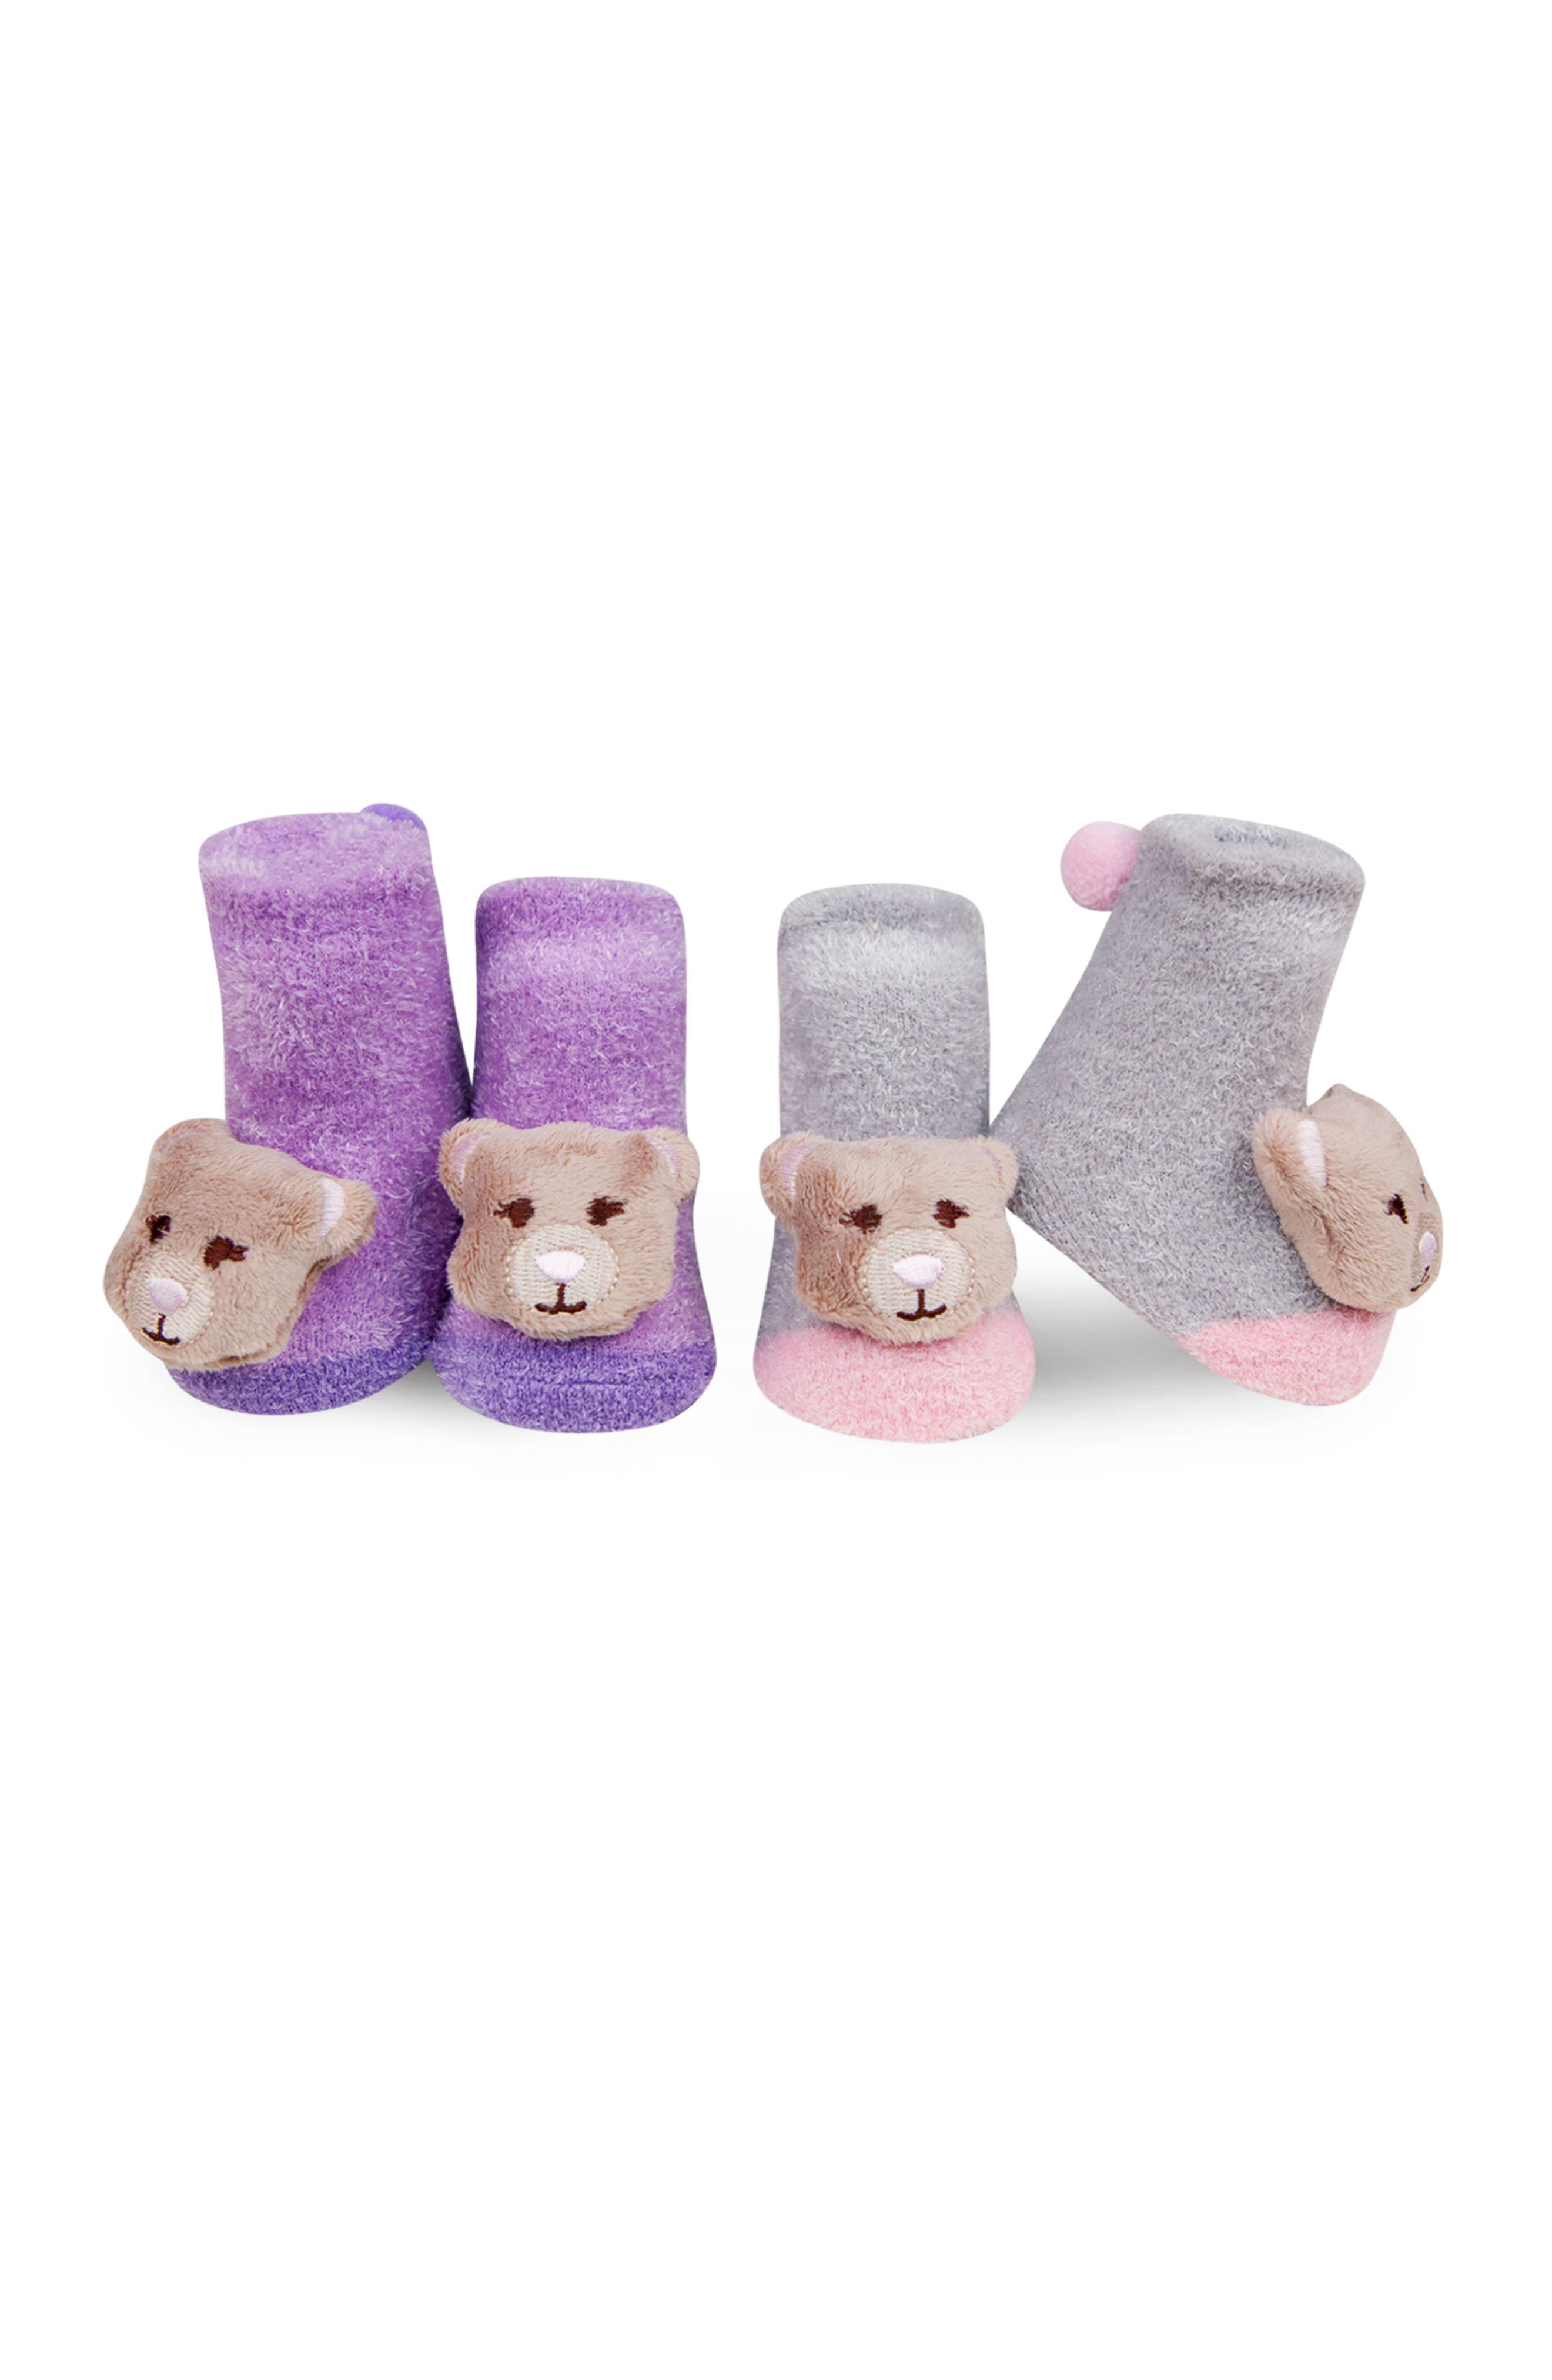 & Friends 2-Pack Animal Rattle Socks,                             Main thumbnail 1, color,                             500